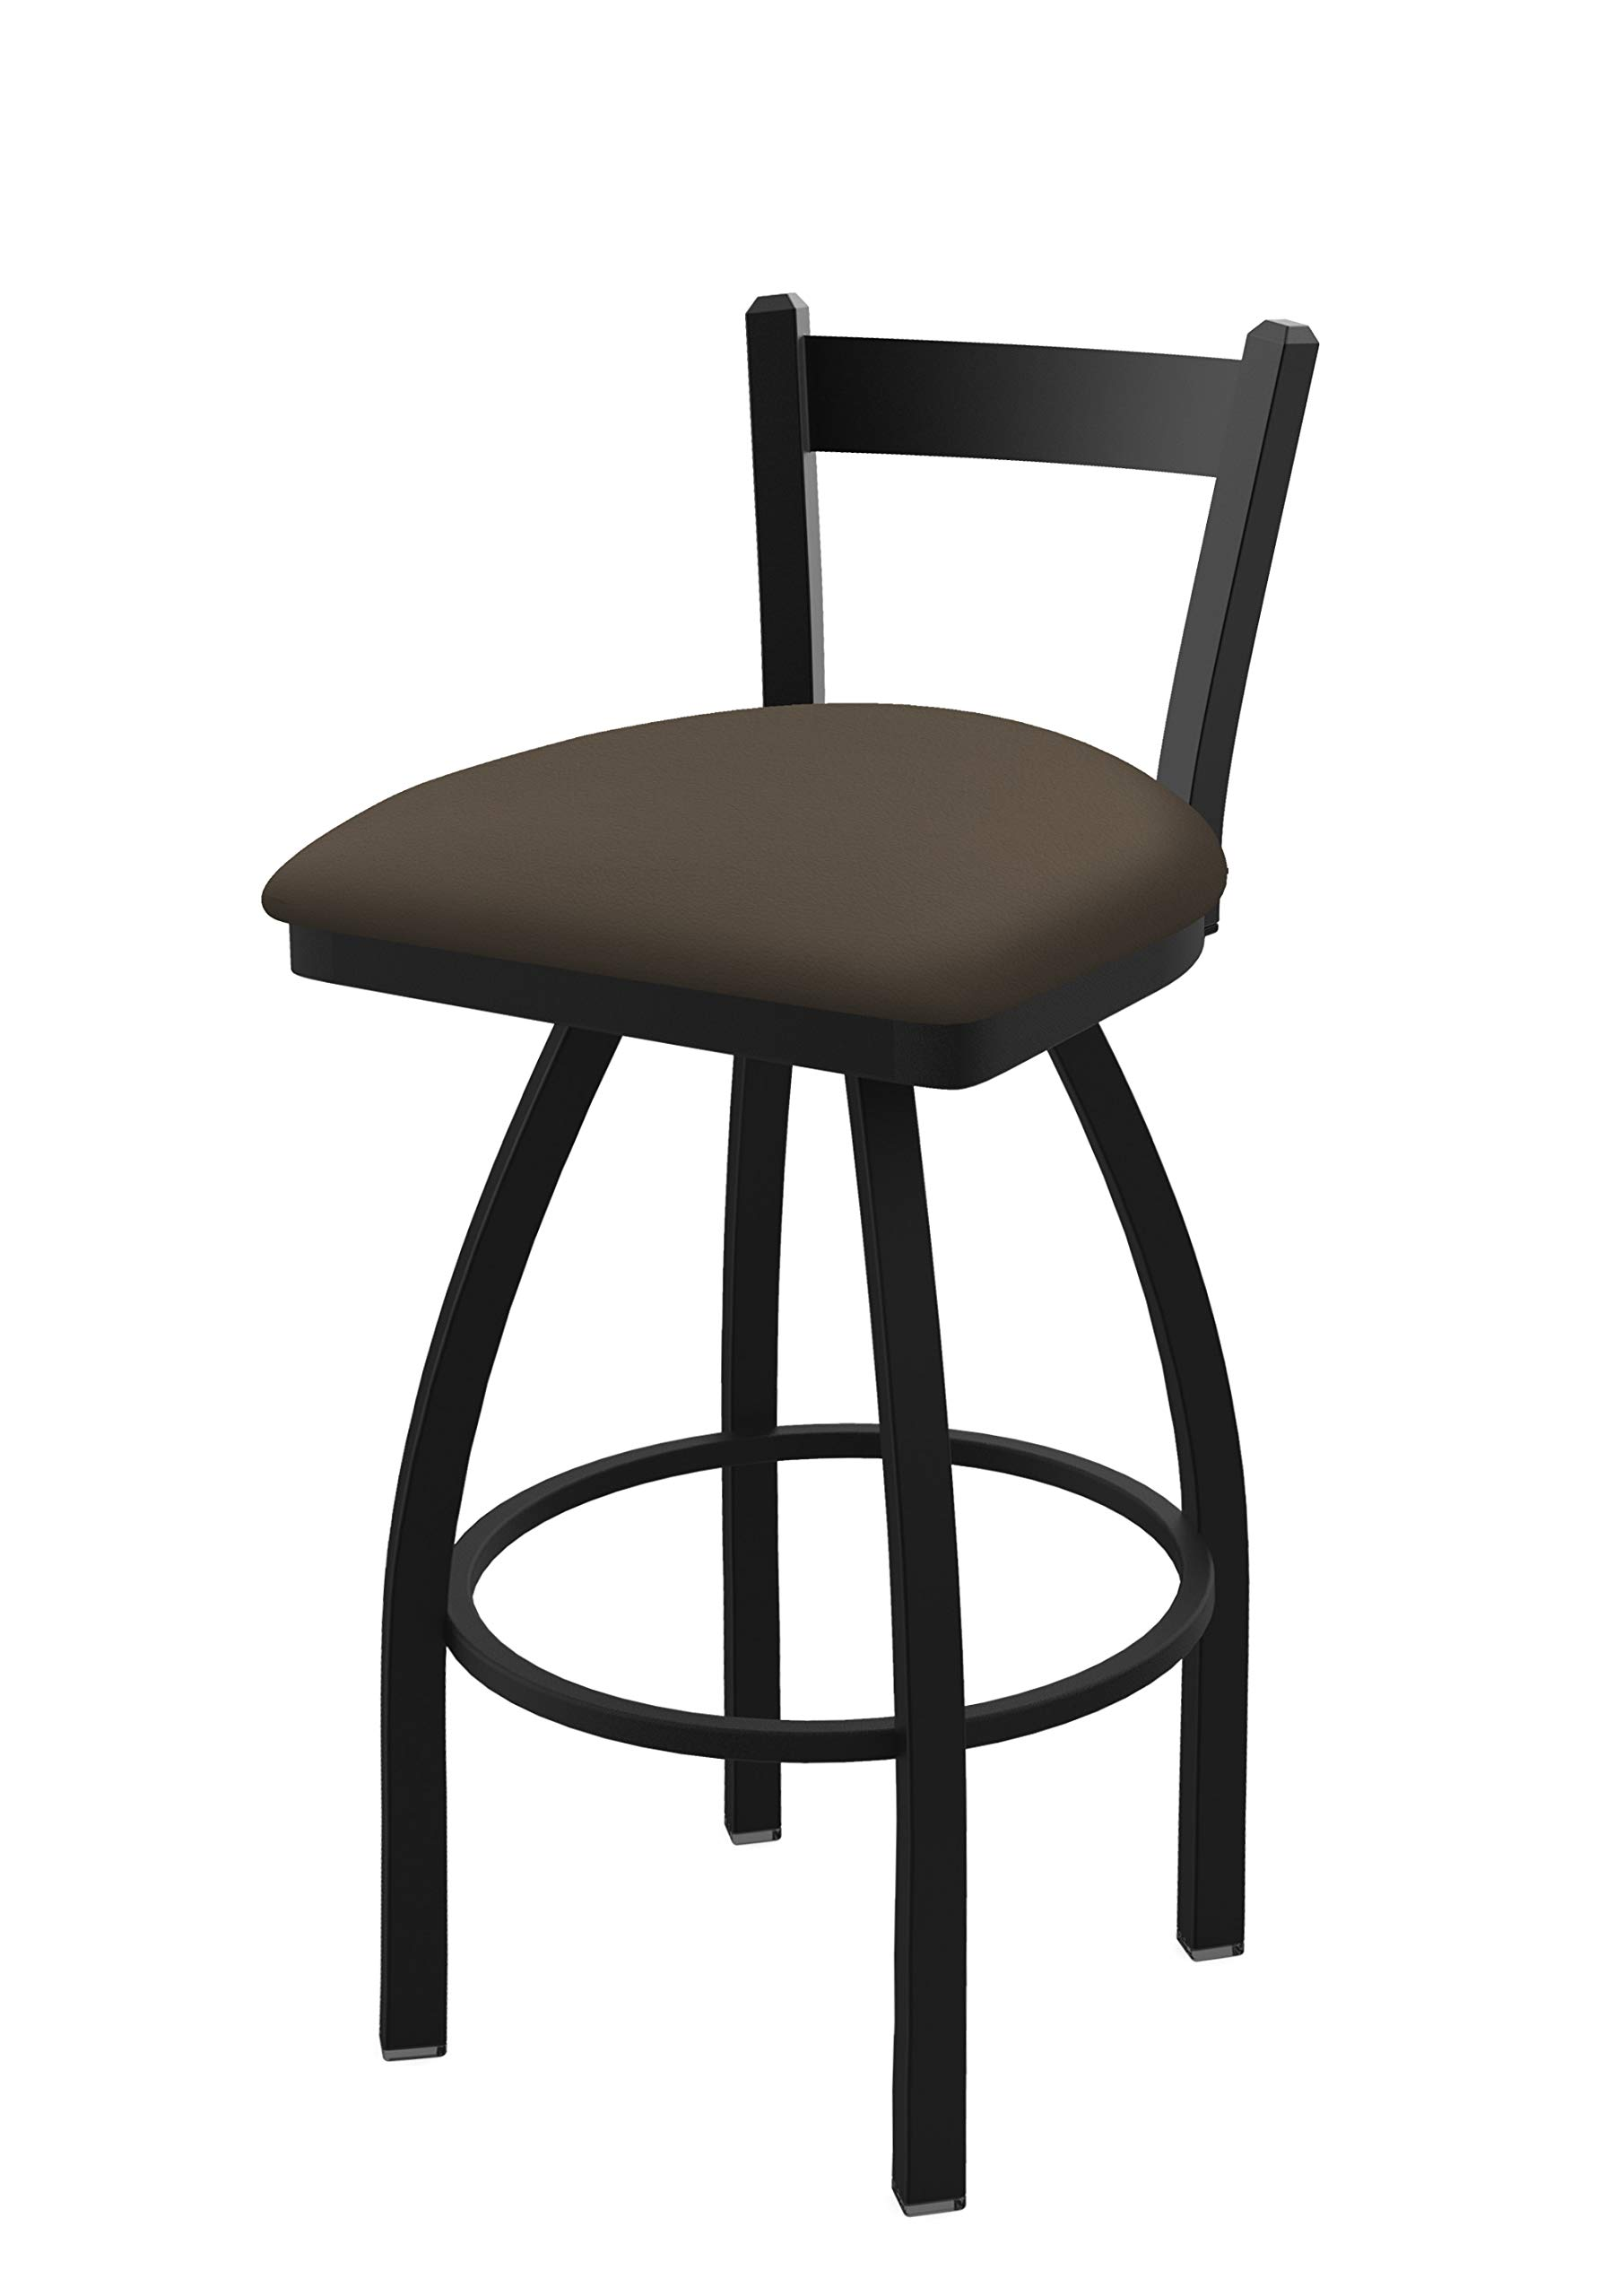 Holland Bar Stool Co. 82125BW006 821 Catalina 25'' Low Back Swivel Counter Black Wrinkle Finish and Canter Earth Seat Bar Stool